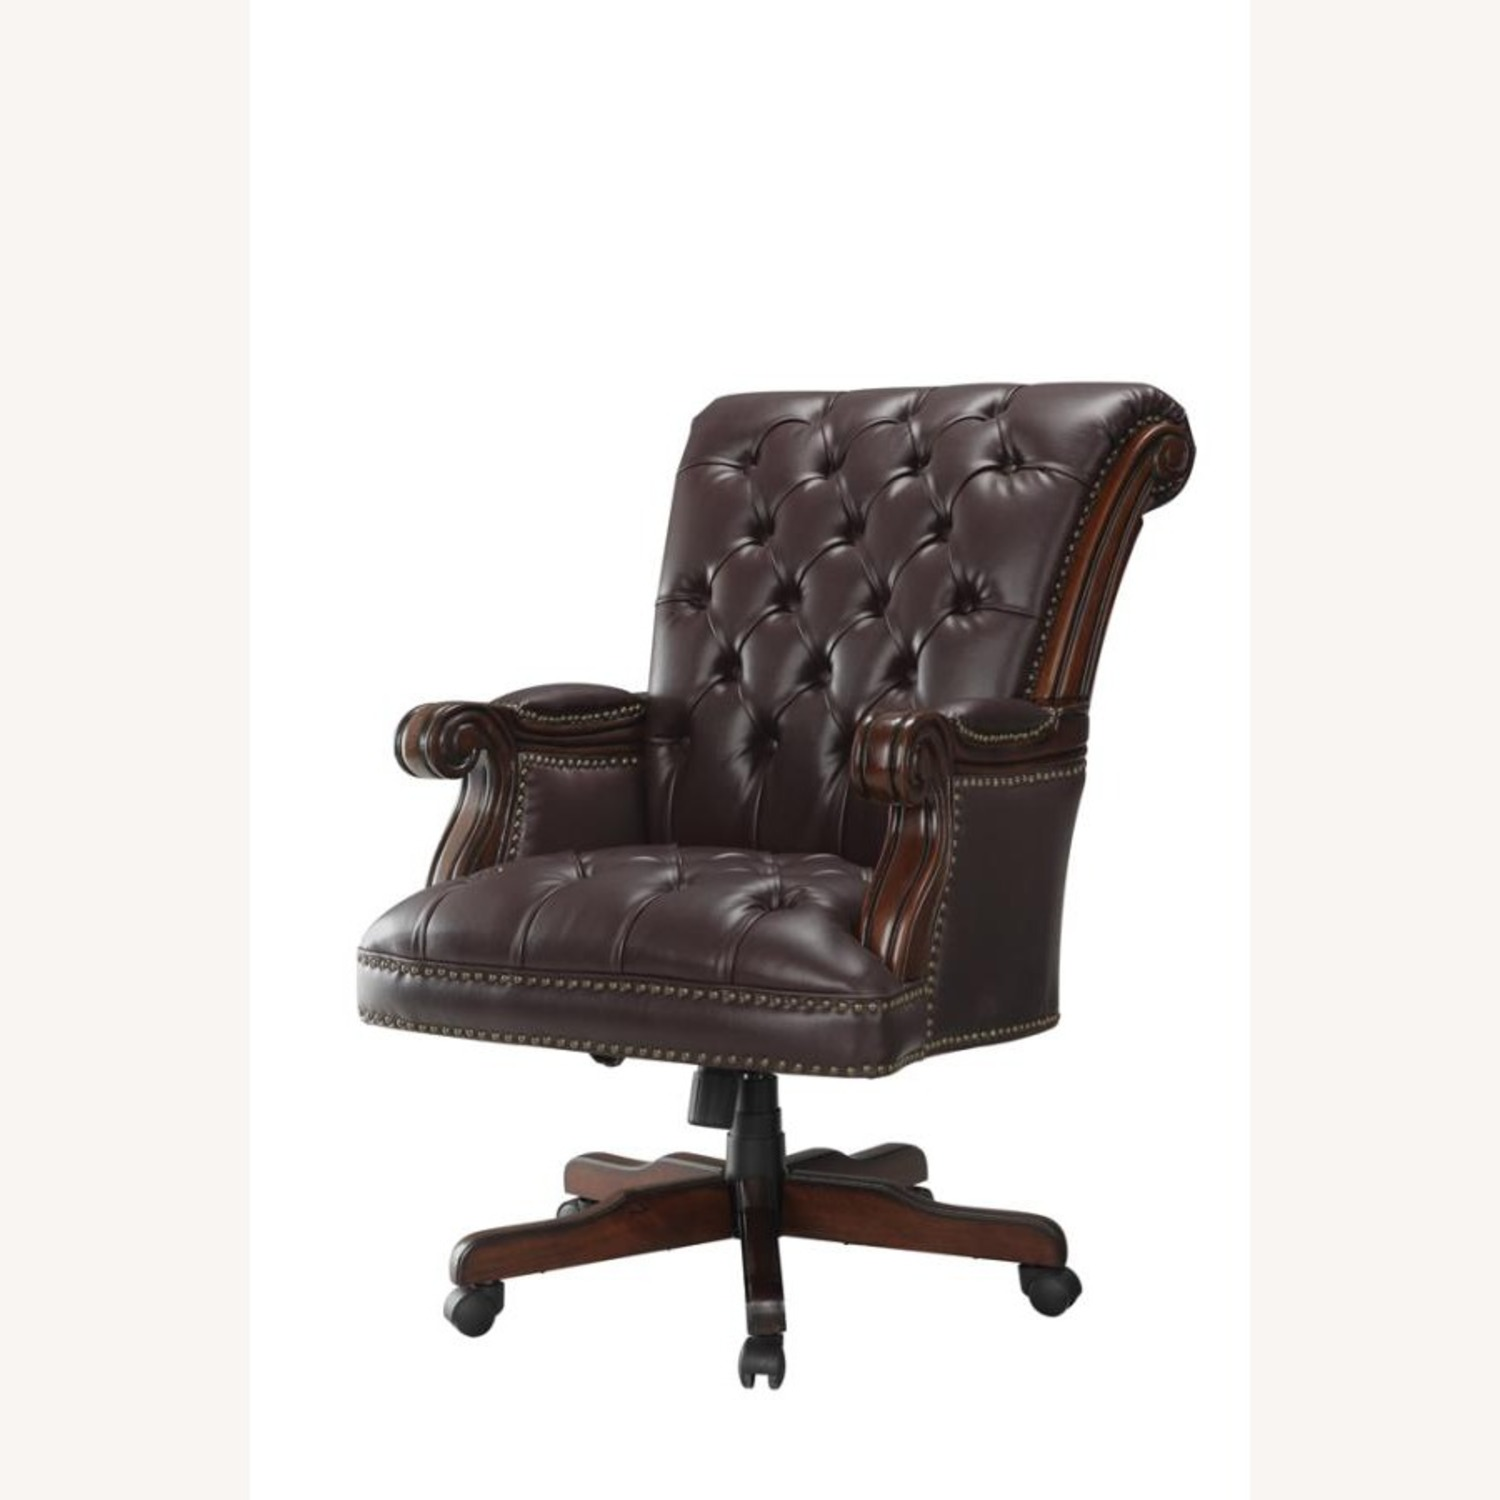 Office Chair In Dark Brown Finish - image-0